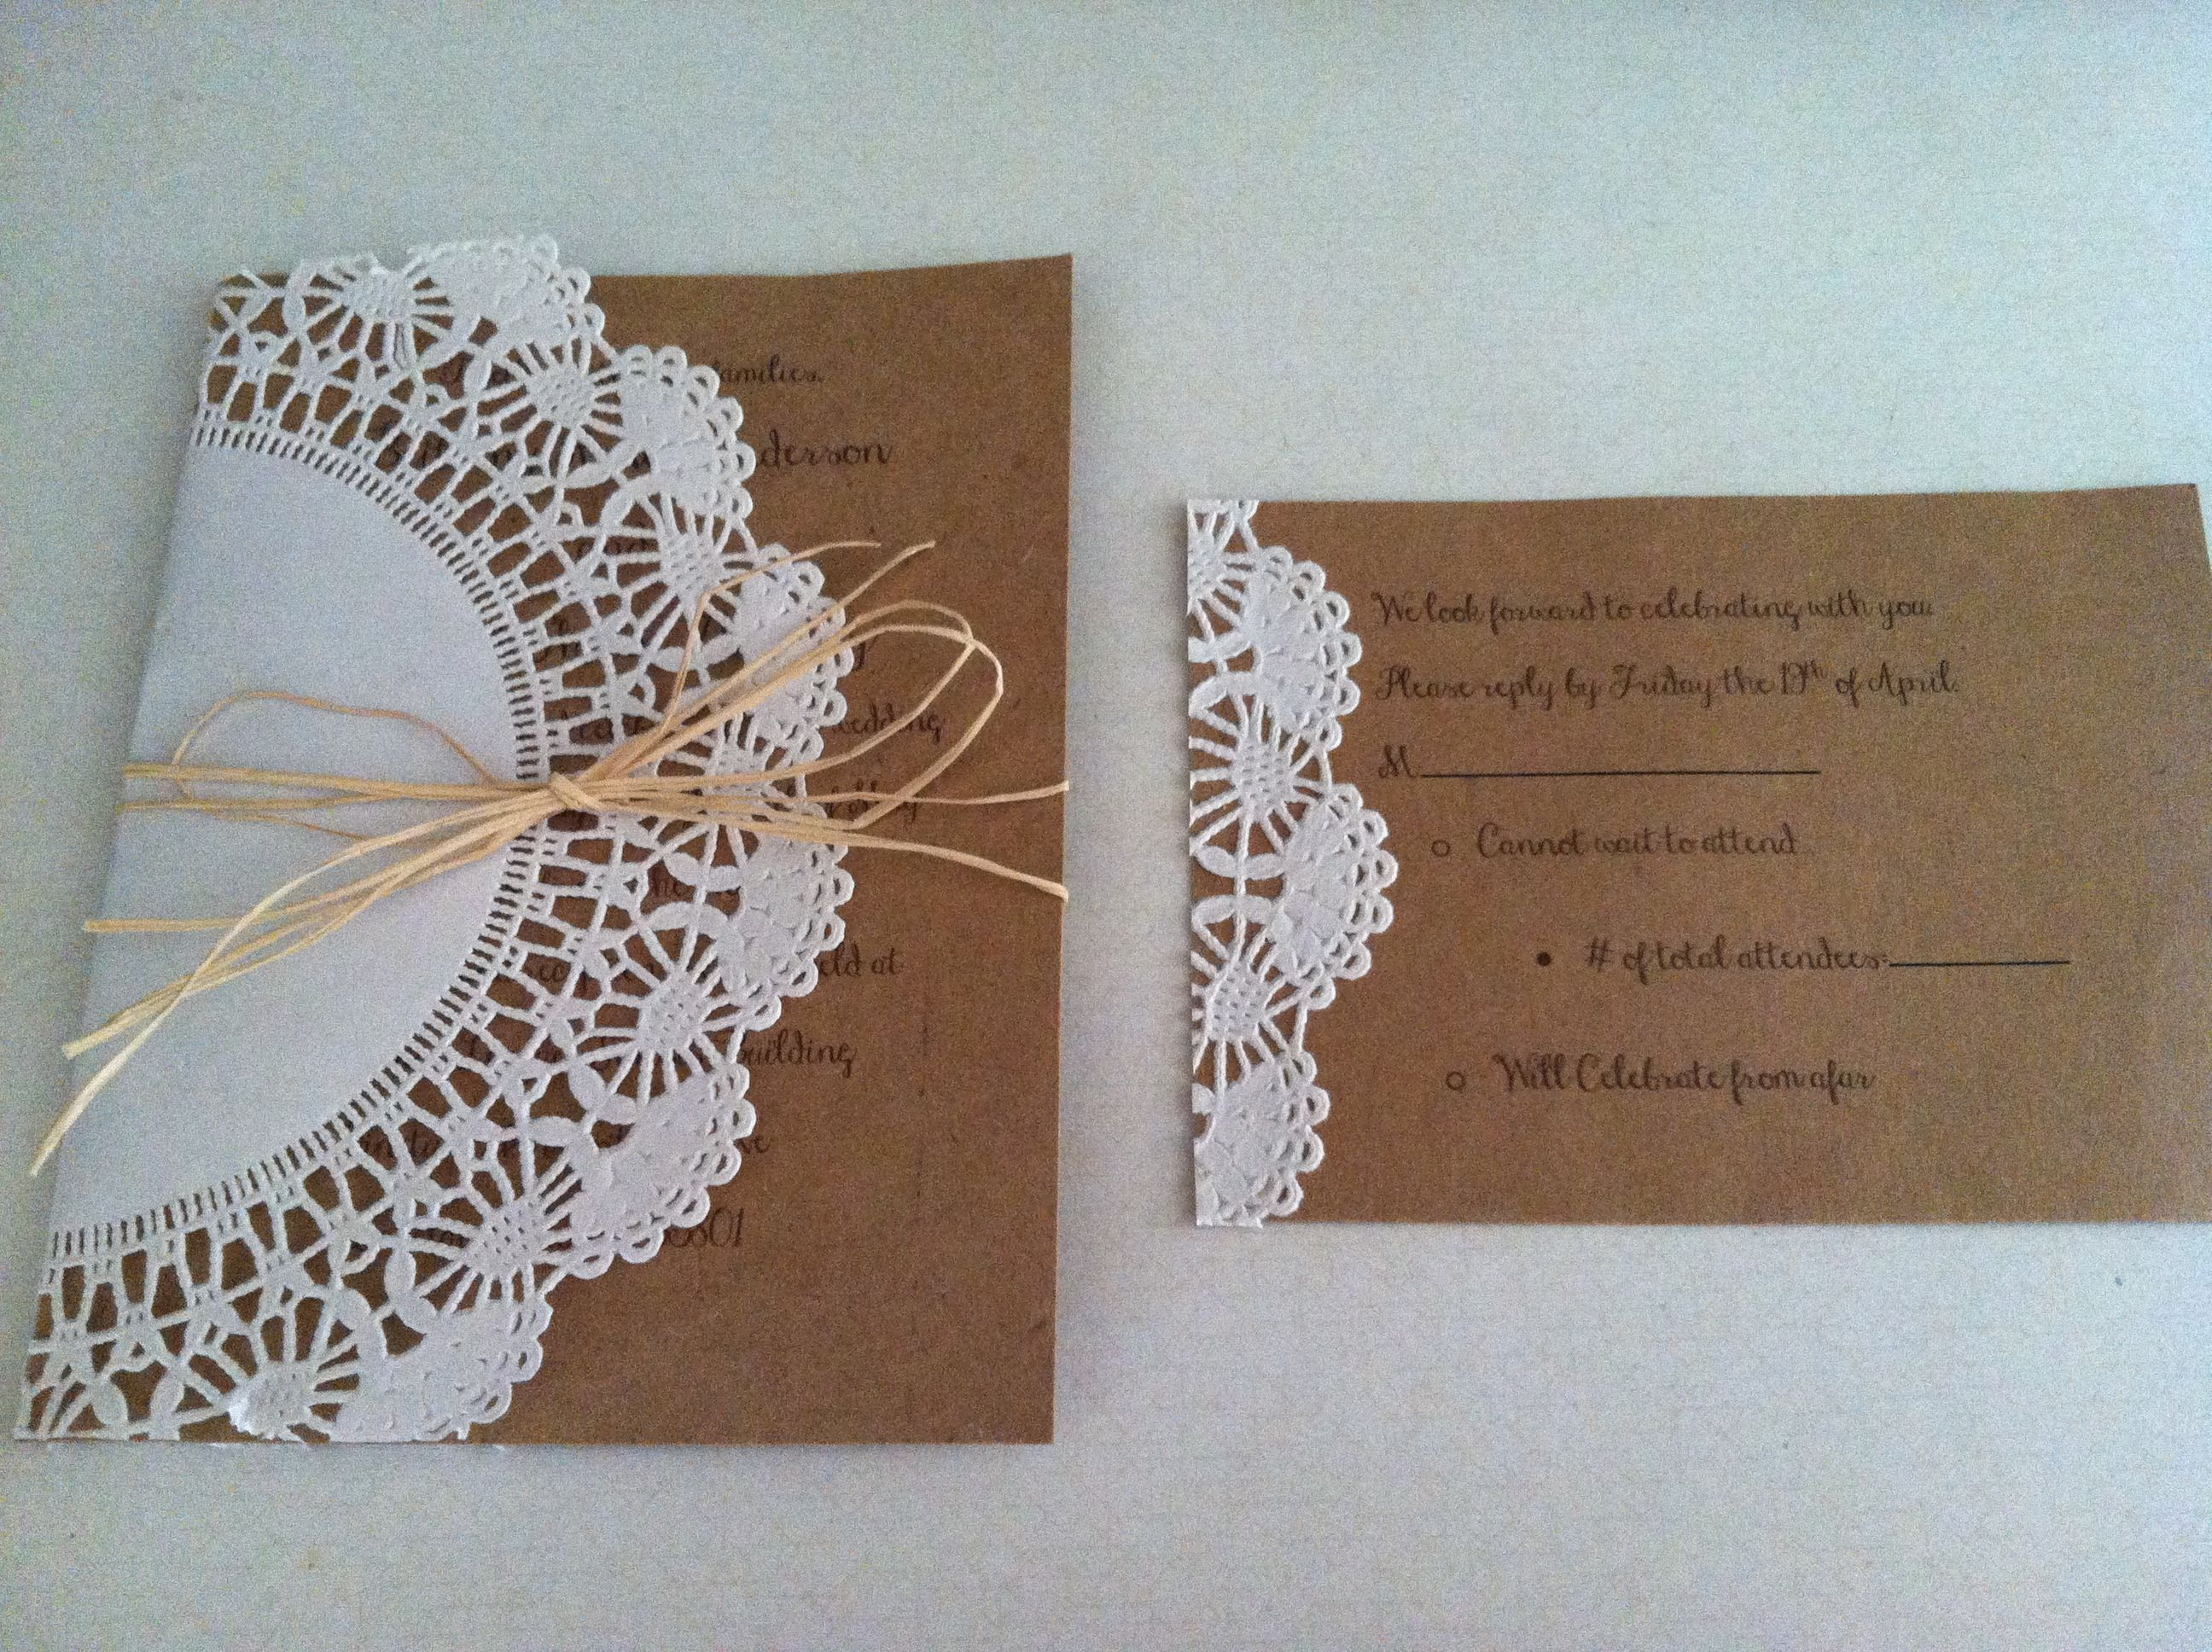 Diy Wedding Invites 5x7 Card Stock For Invite 4x6 Card Stock For